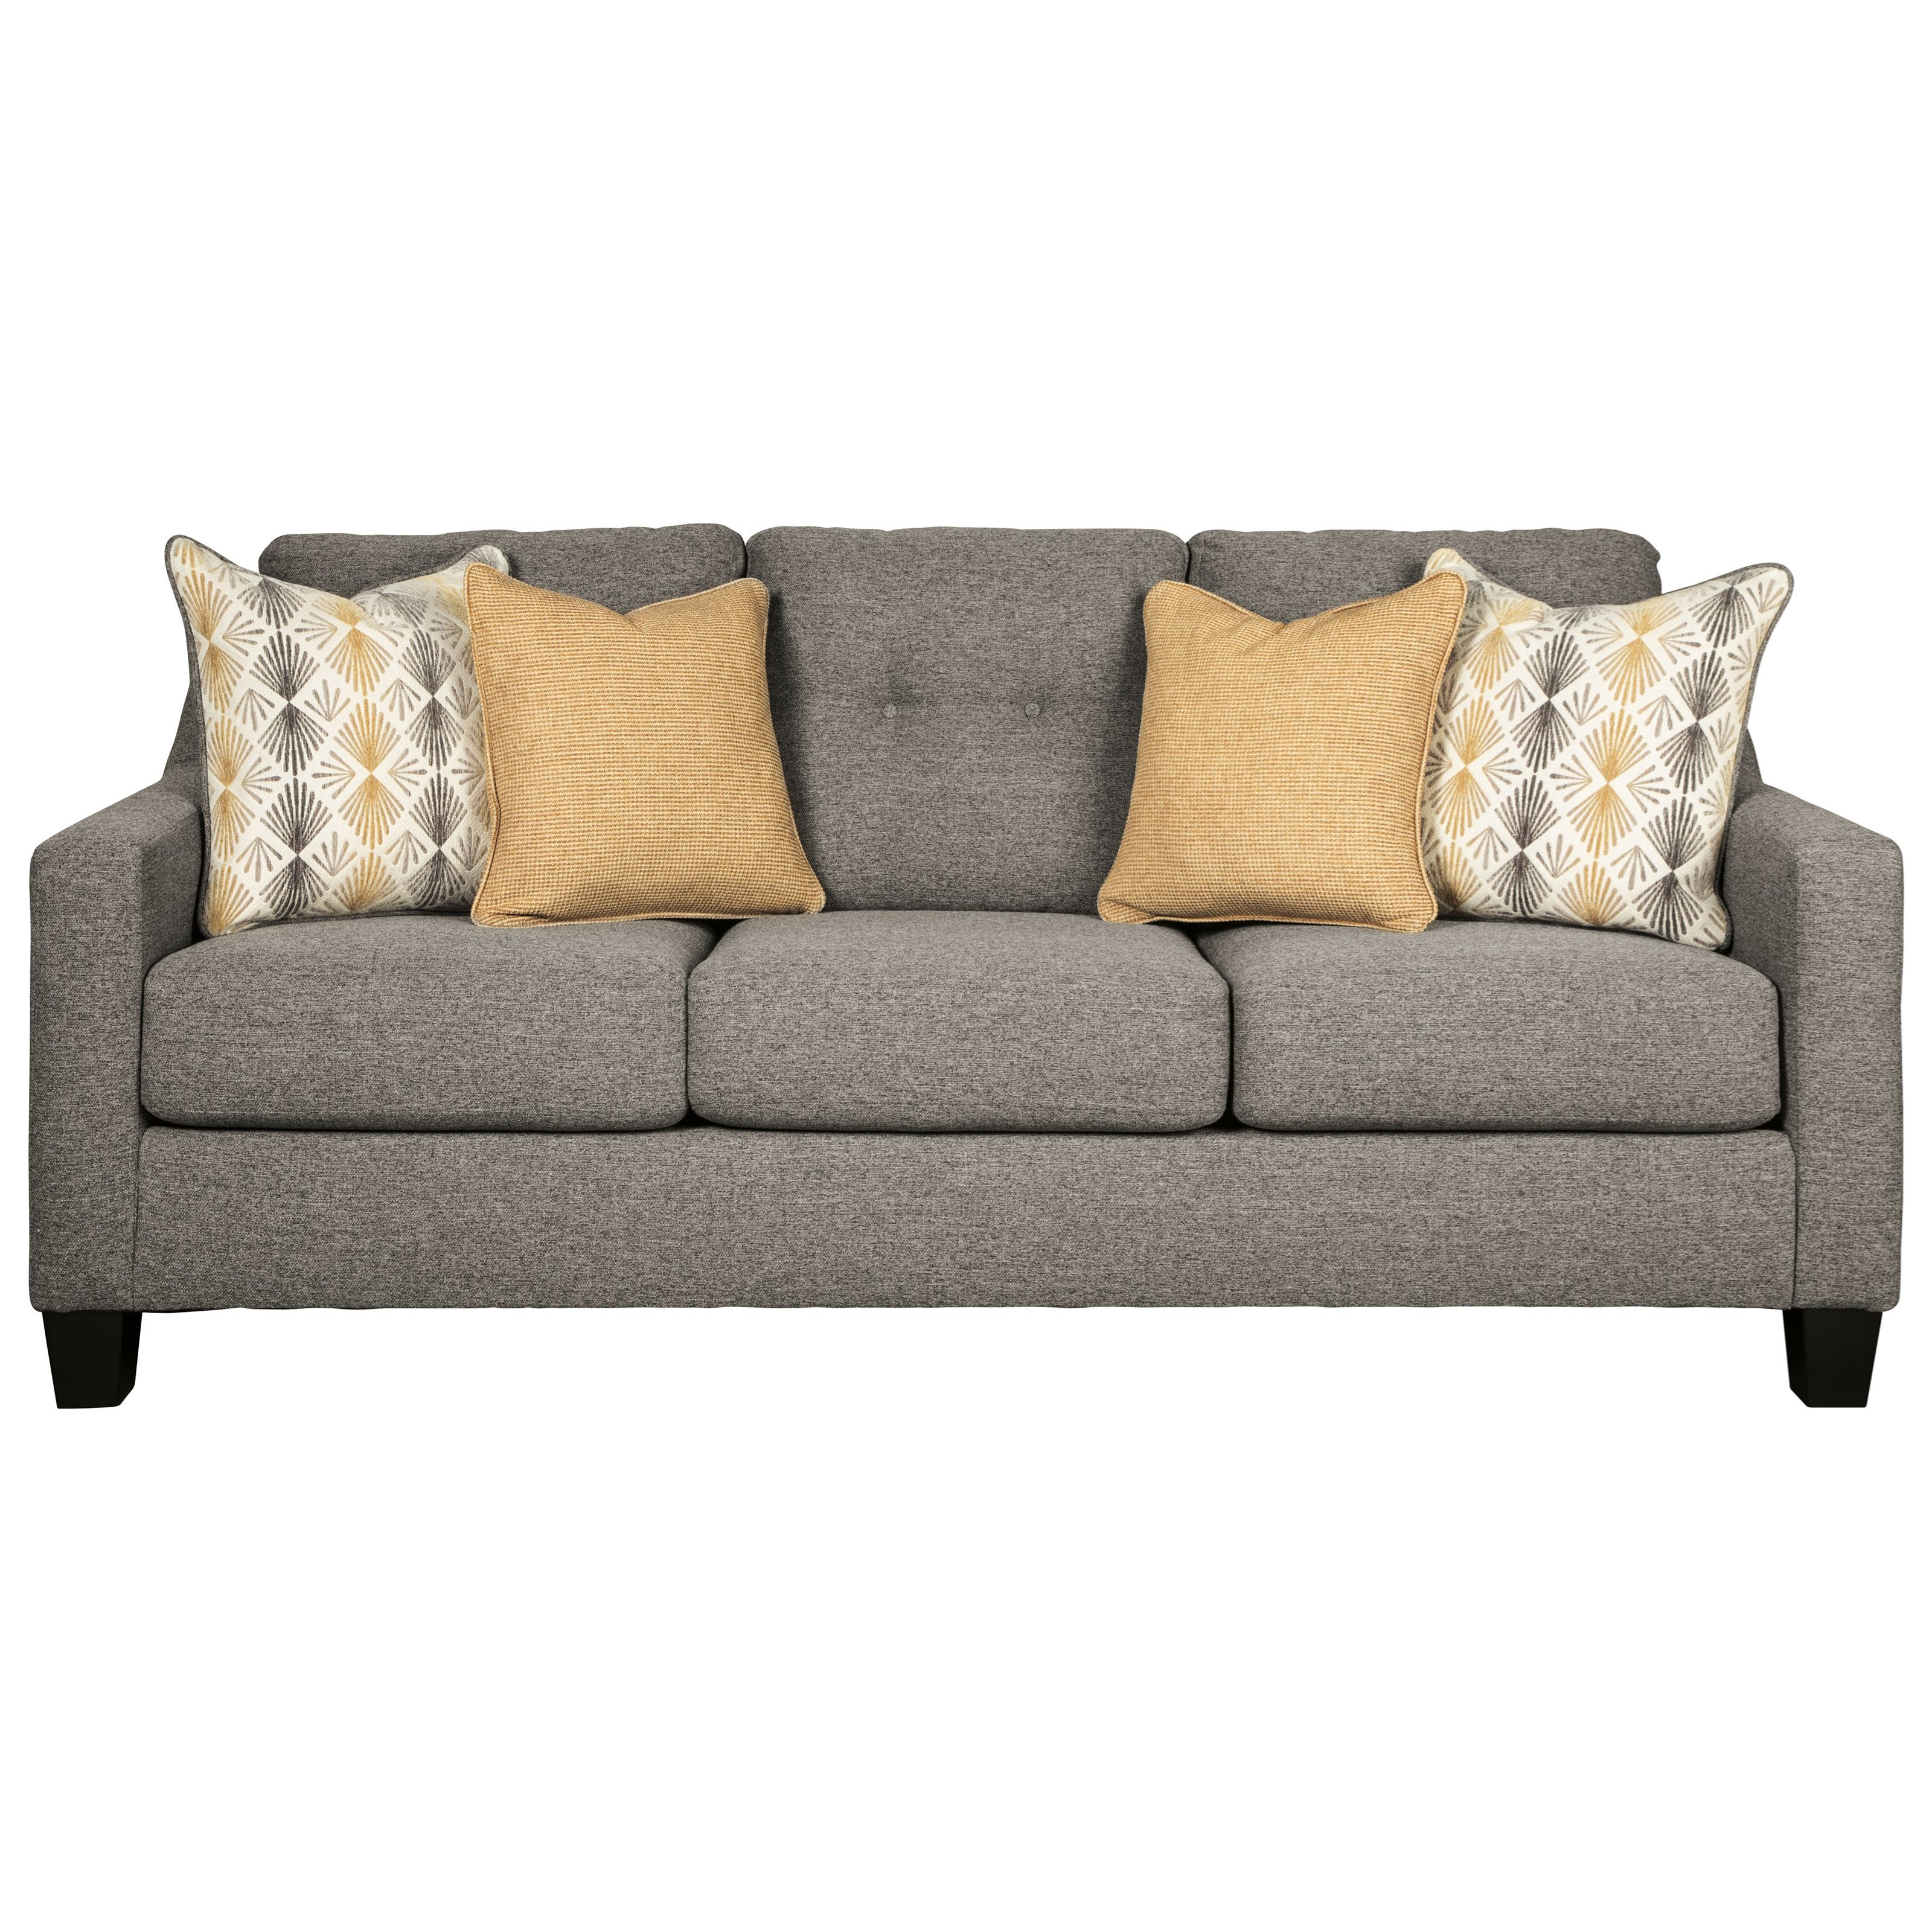 Picture of: Ashley Furniture Benchcraft Daylon 4230438 Contemporary Sofa With Tufted Back Del Sol Furniture Sofas